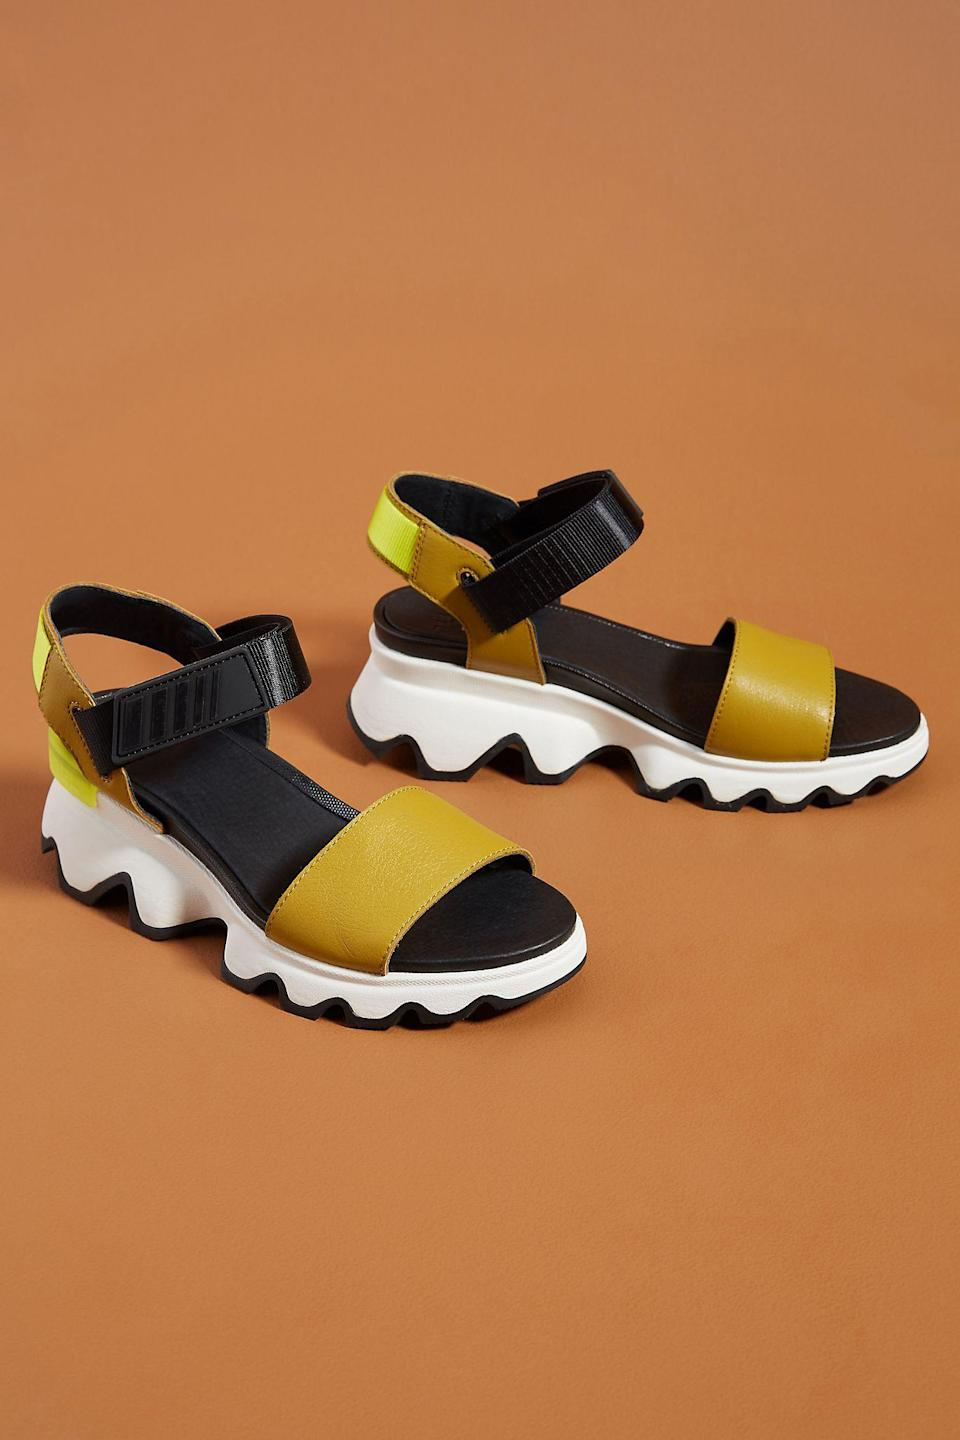 "<h2>Sorel Kinetic Sandals<br></h2><br><em>Shop sandals at <strong><a href=""https://www.anthropologie.com/shoes-sandals?style=Sport"" rel=""nofollow noopener"" target=""_blank"" data-ylk=""slk:Anthropologie"" class=""link rapid-noclick-resp"">Anthropologie</a></strong></em><br><br><strong>SOREL</strong> Sorel Kinetic Sandals, $, available at <a href=""https://go.skimresources.com/?id=30283X879131&url=https%3A%2F%2Fwww.anthropologie.com%2Fshop%2Fsorel-kinetic-sandals%3Fcolor%3D072%26type%3DSTANDARD%26quantity%3D1"" rel=""nofollow noopener"" target=""_blank"" data-ylk=""slk:Anthropologie"" class=""link rapid-noclick-resp"">Anthropologie</a>"